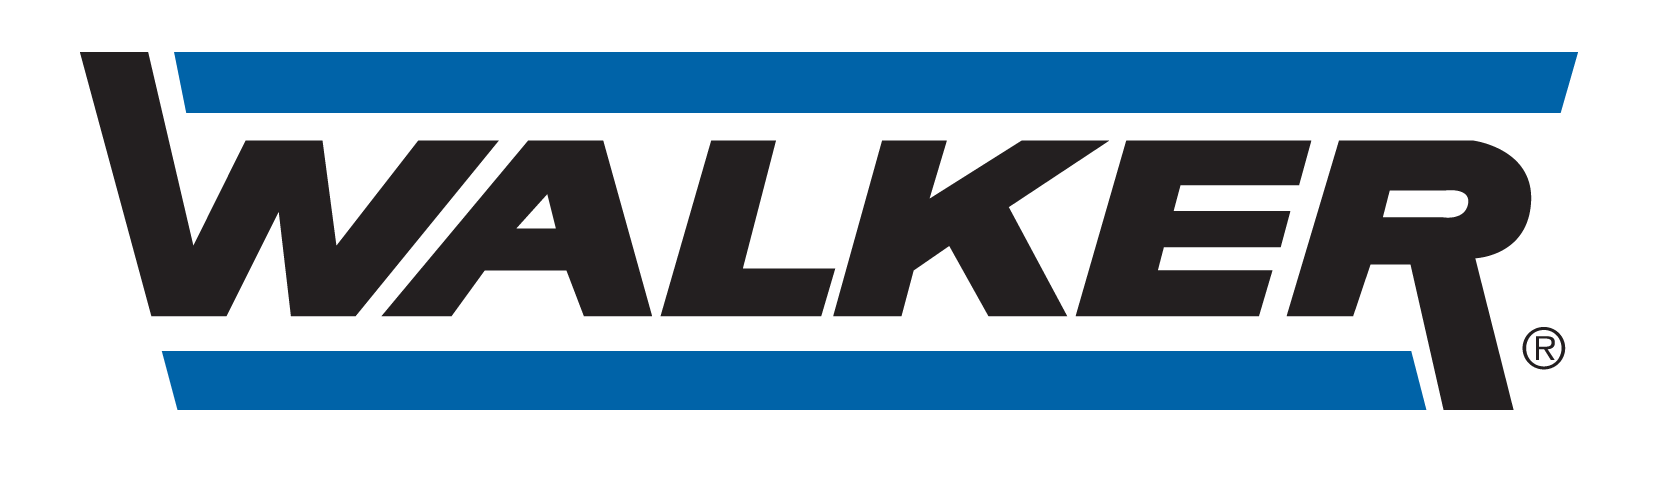 AZUR AUTOS - logo Walker